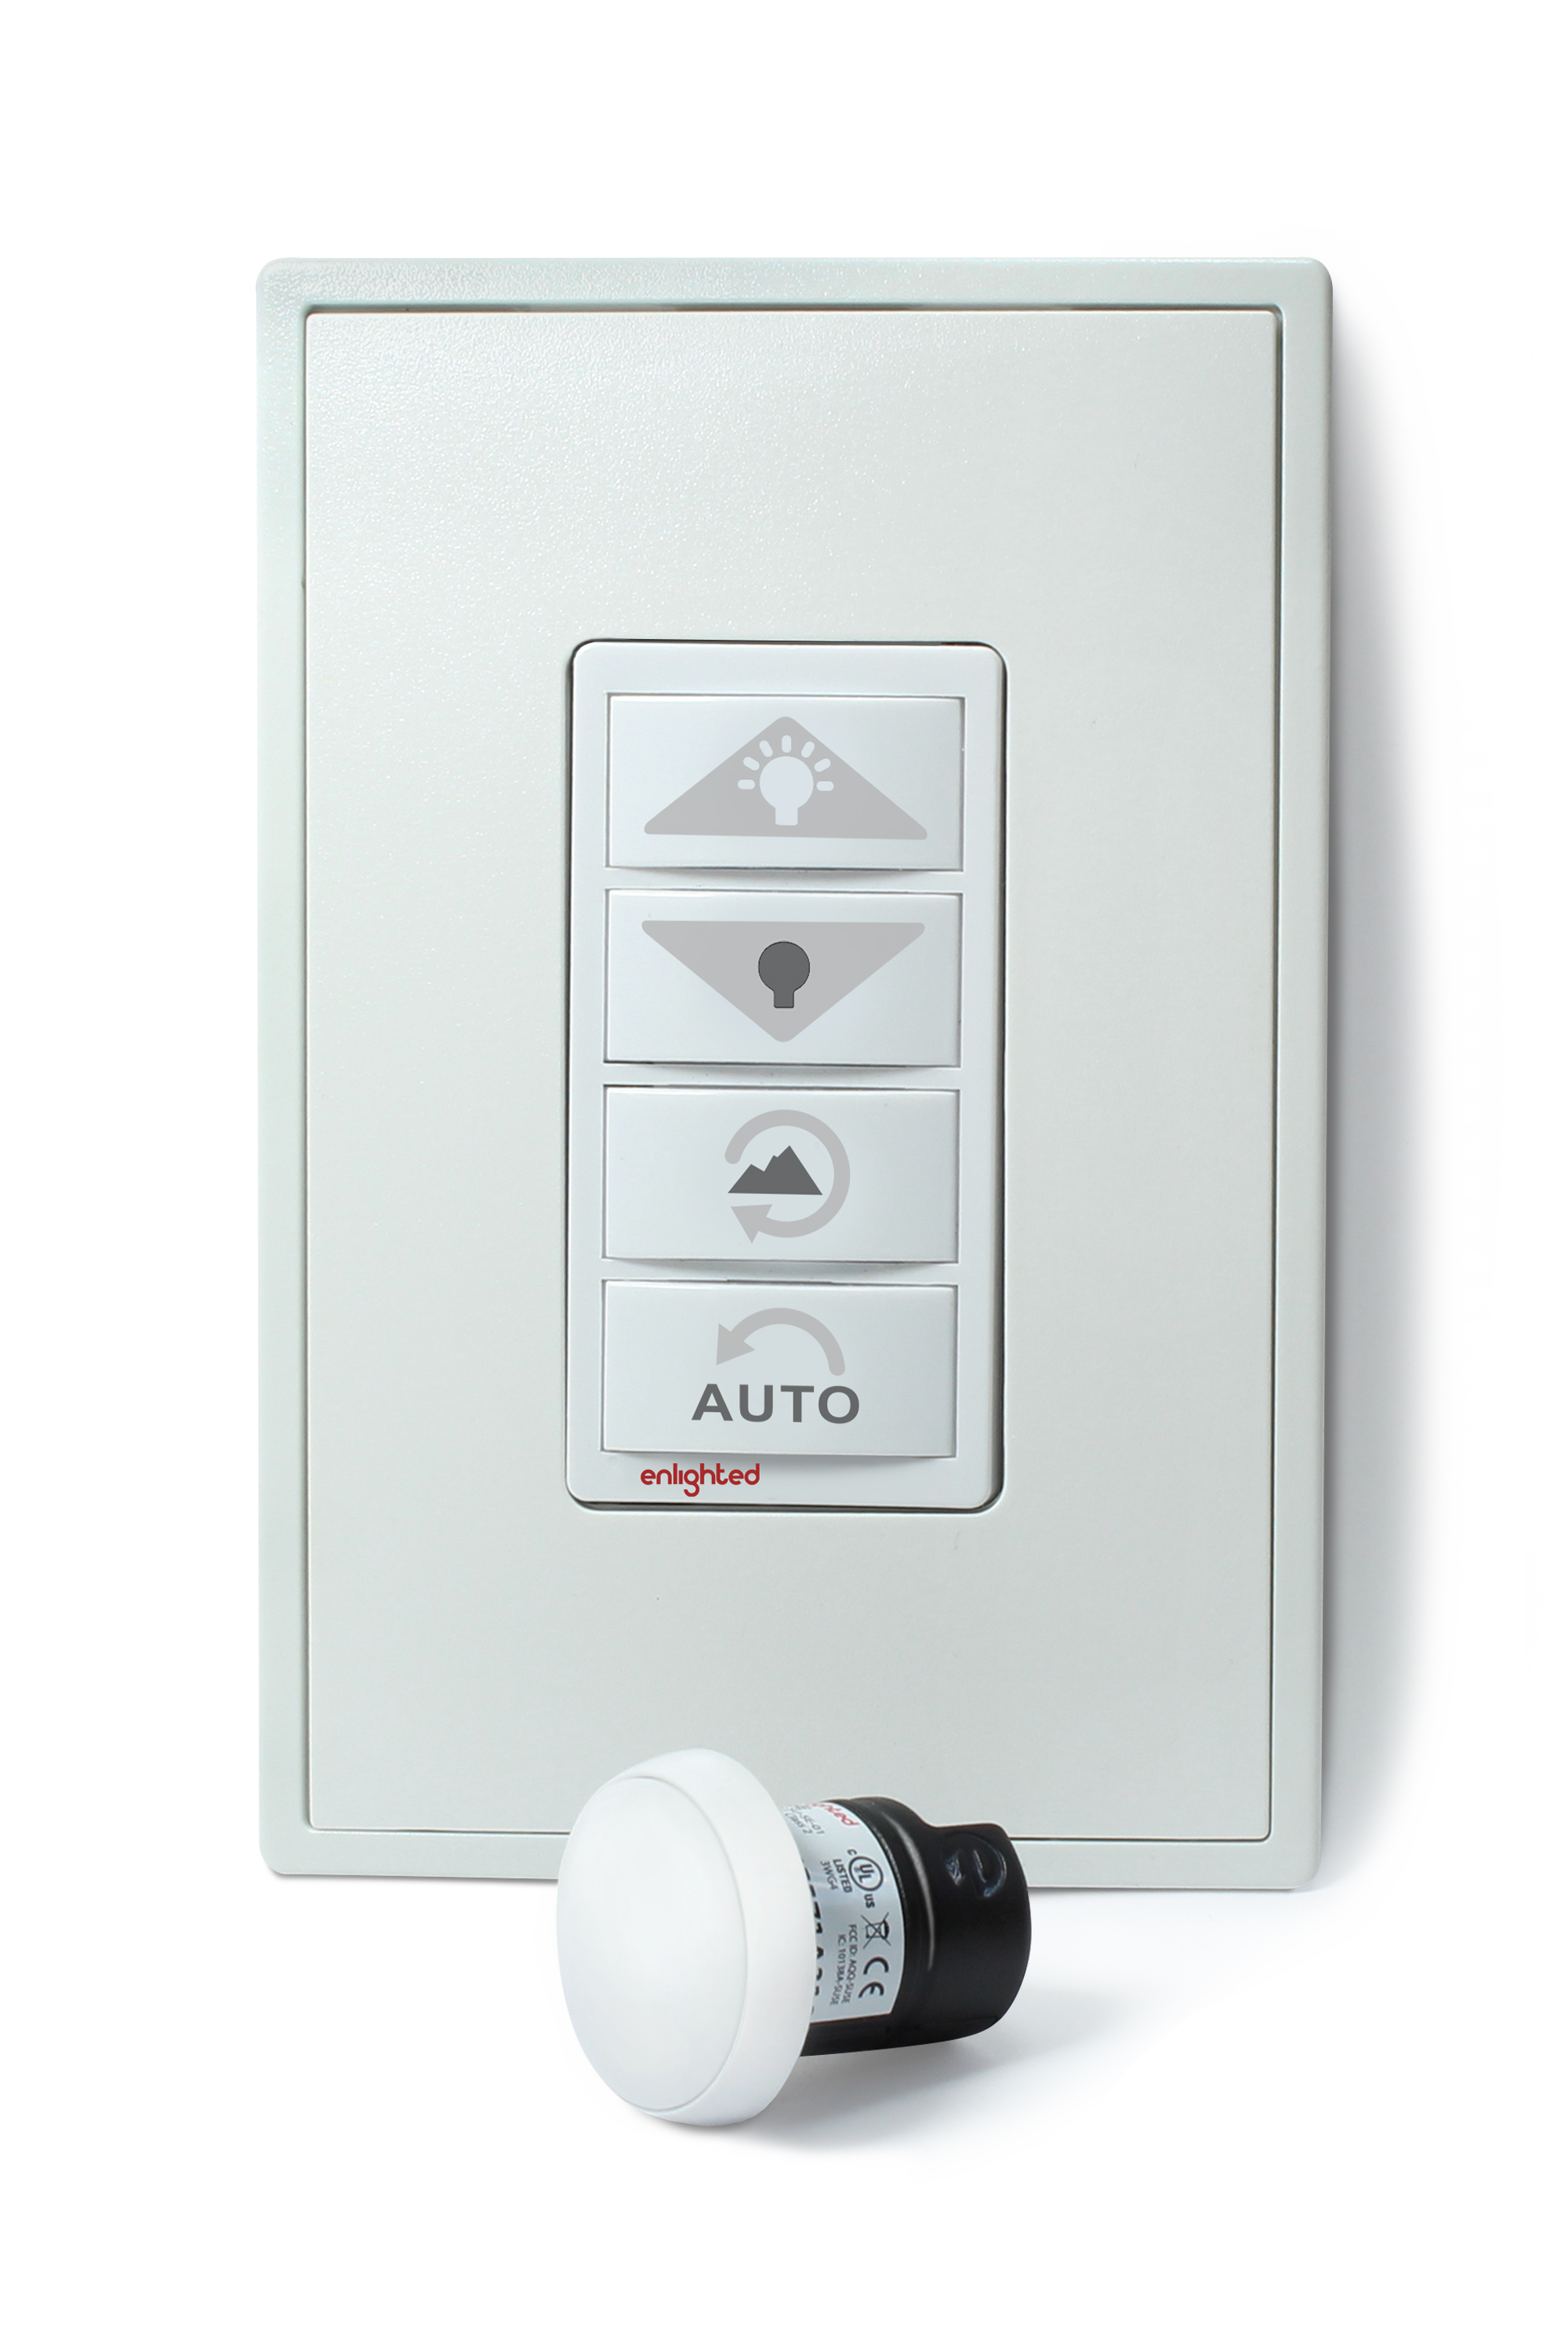 Easy Wireless Lighting Control With An